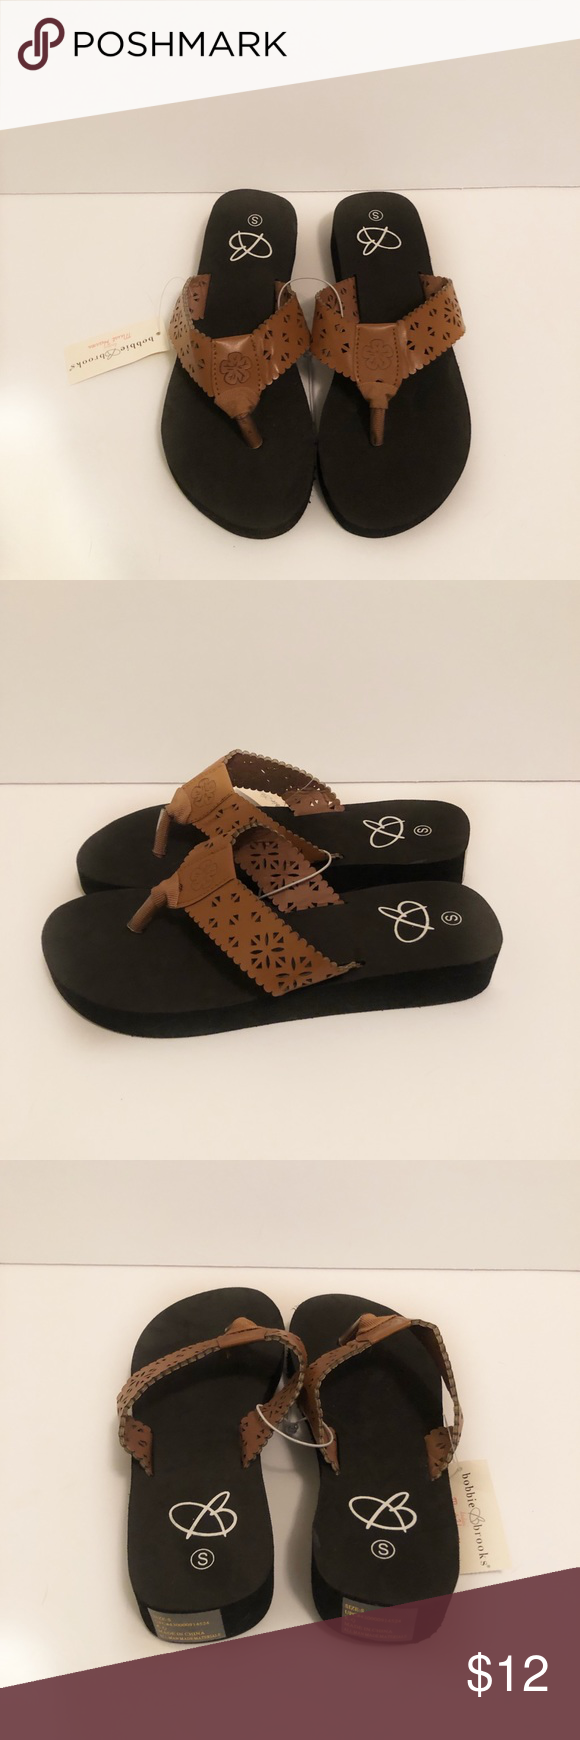 c1cc701f19c Brand new Bobbie Brooks Flip Flops Adorable brown faux leather straps with  cut out designs and